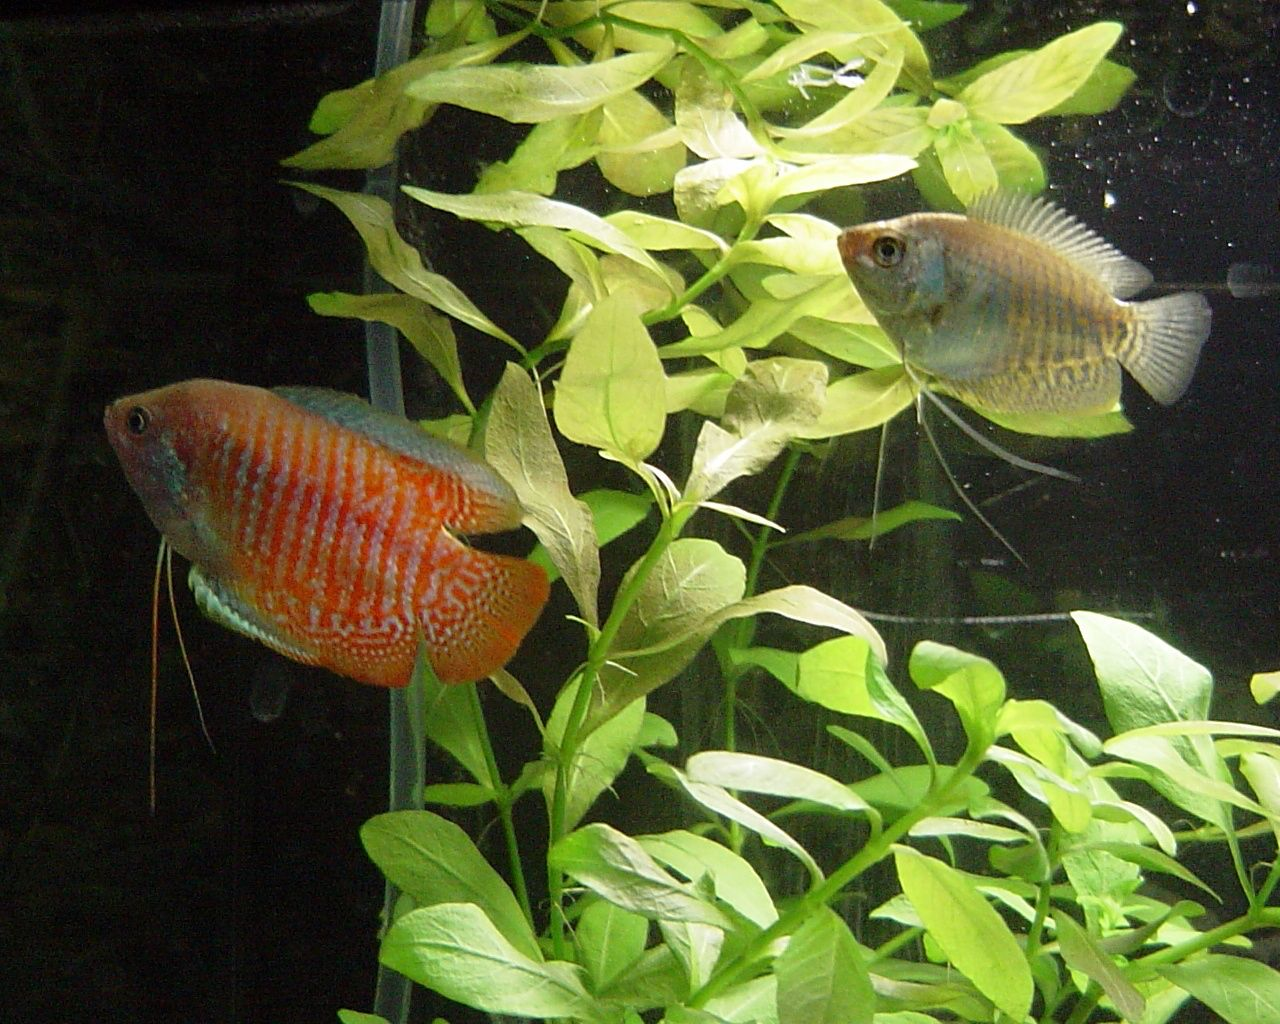 Freshwater aquarium fish from asia - Asia